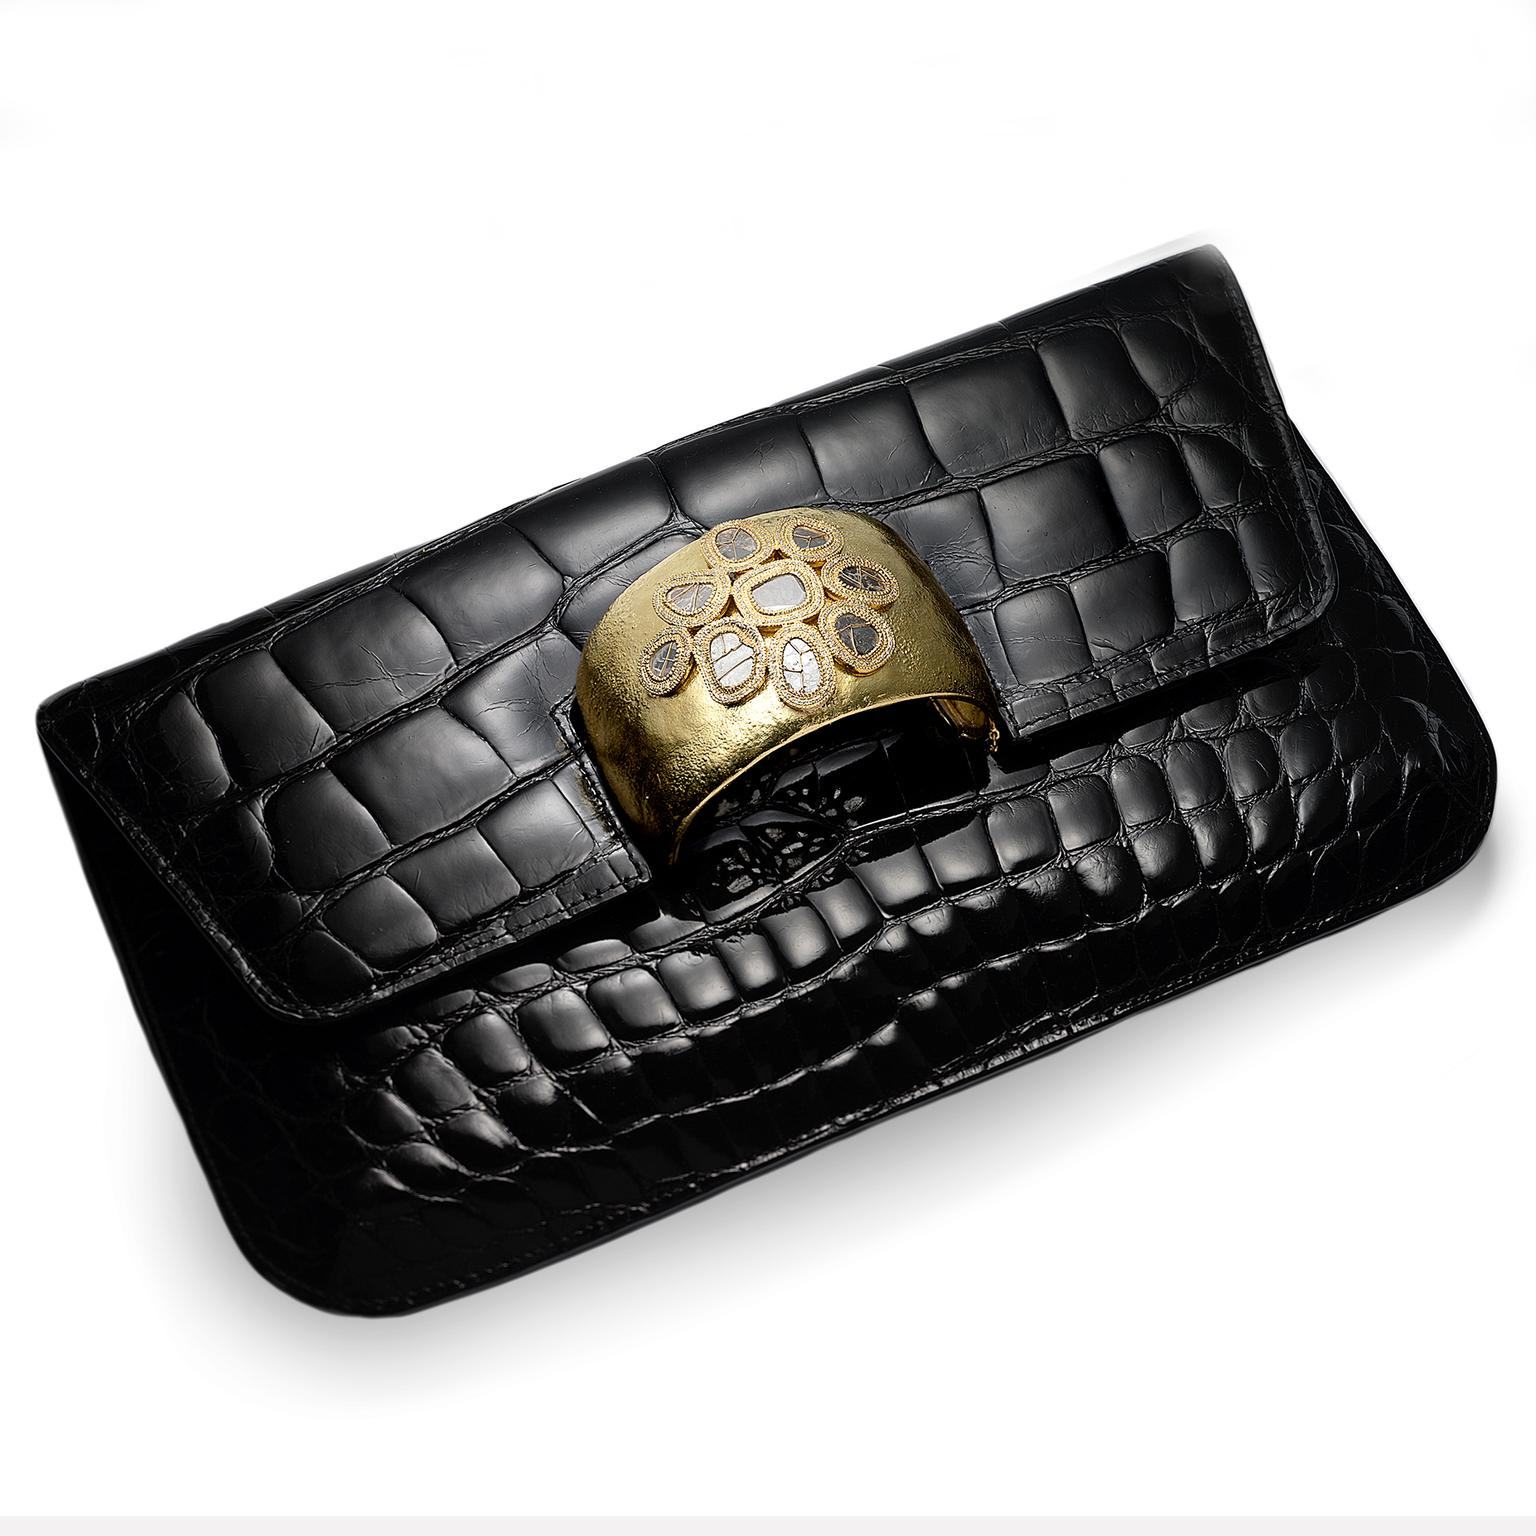 Coomi black leather bag with gold cuff